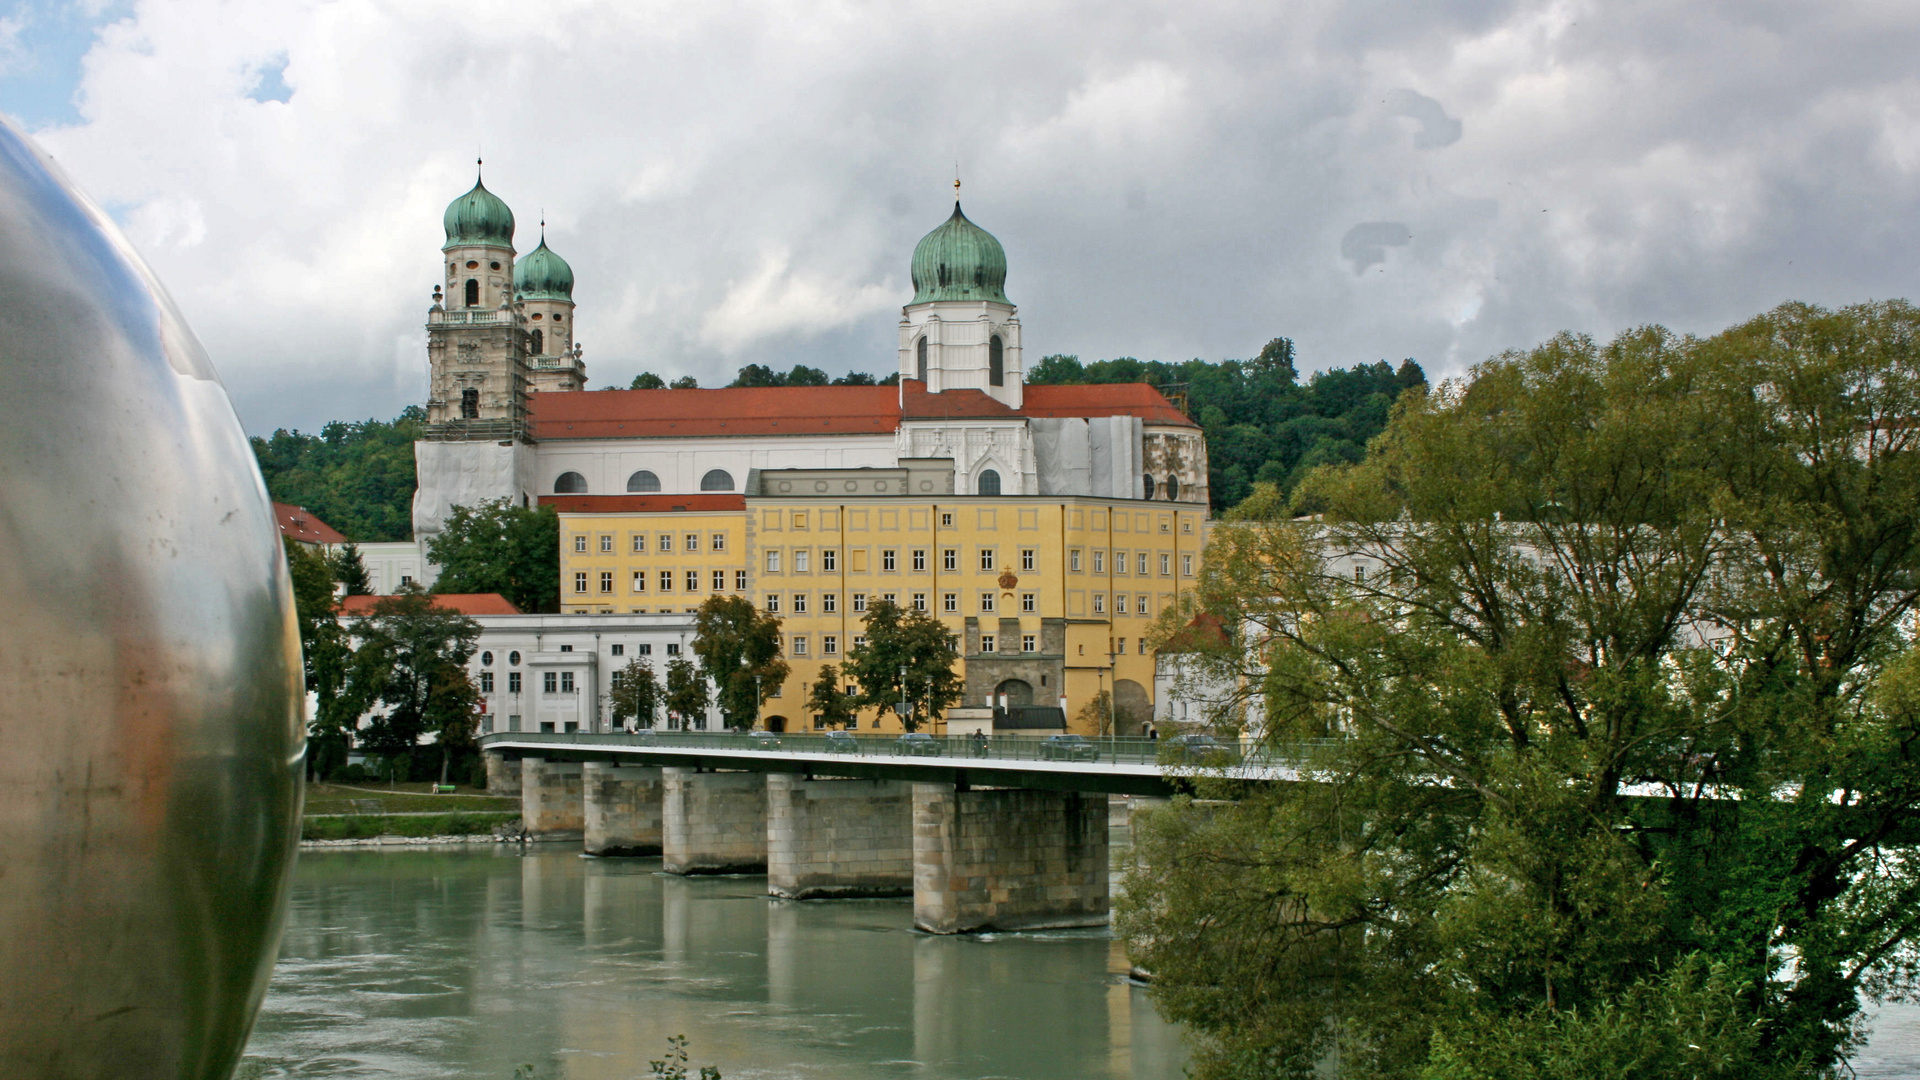 St. Stephansdom in Passau